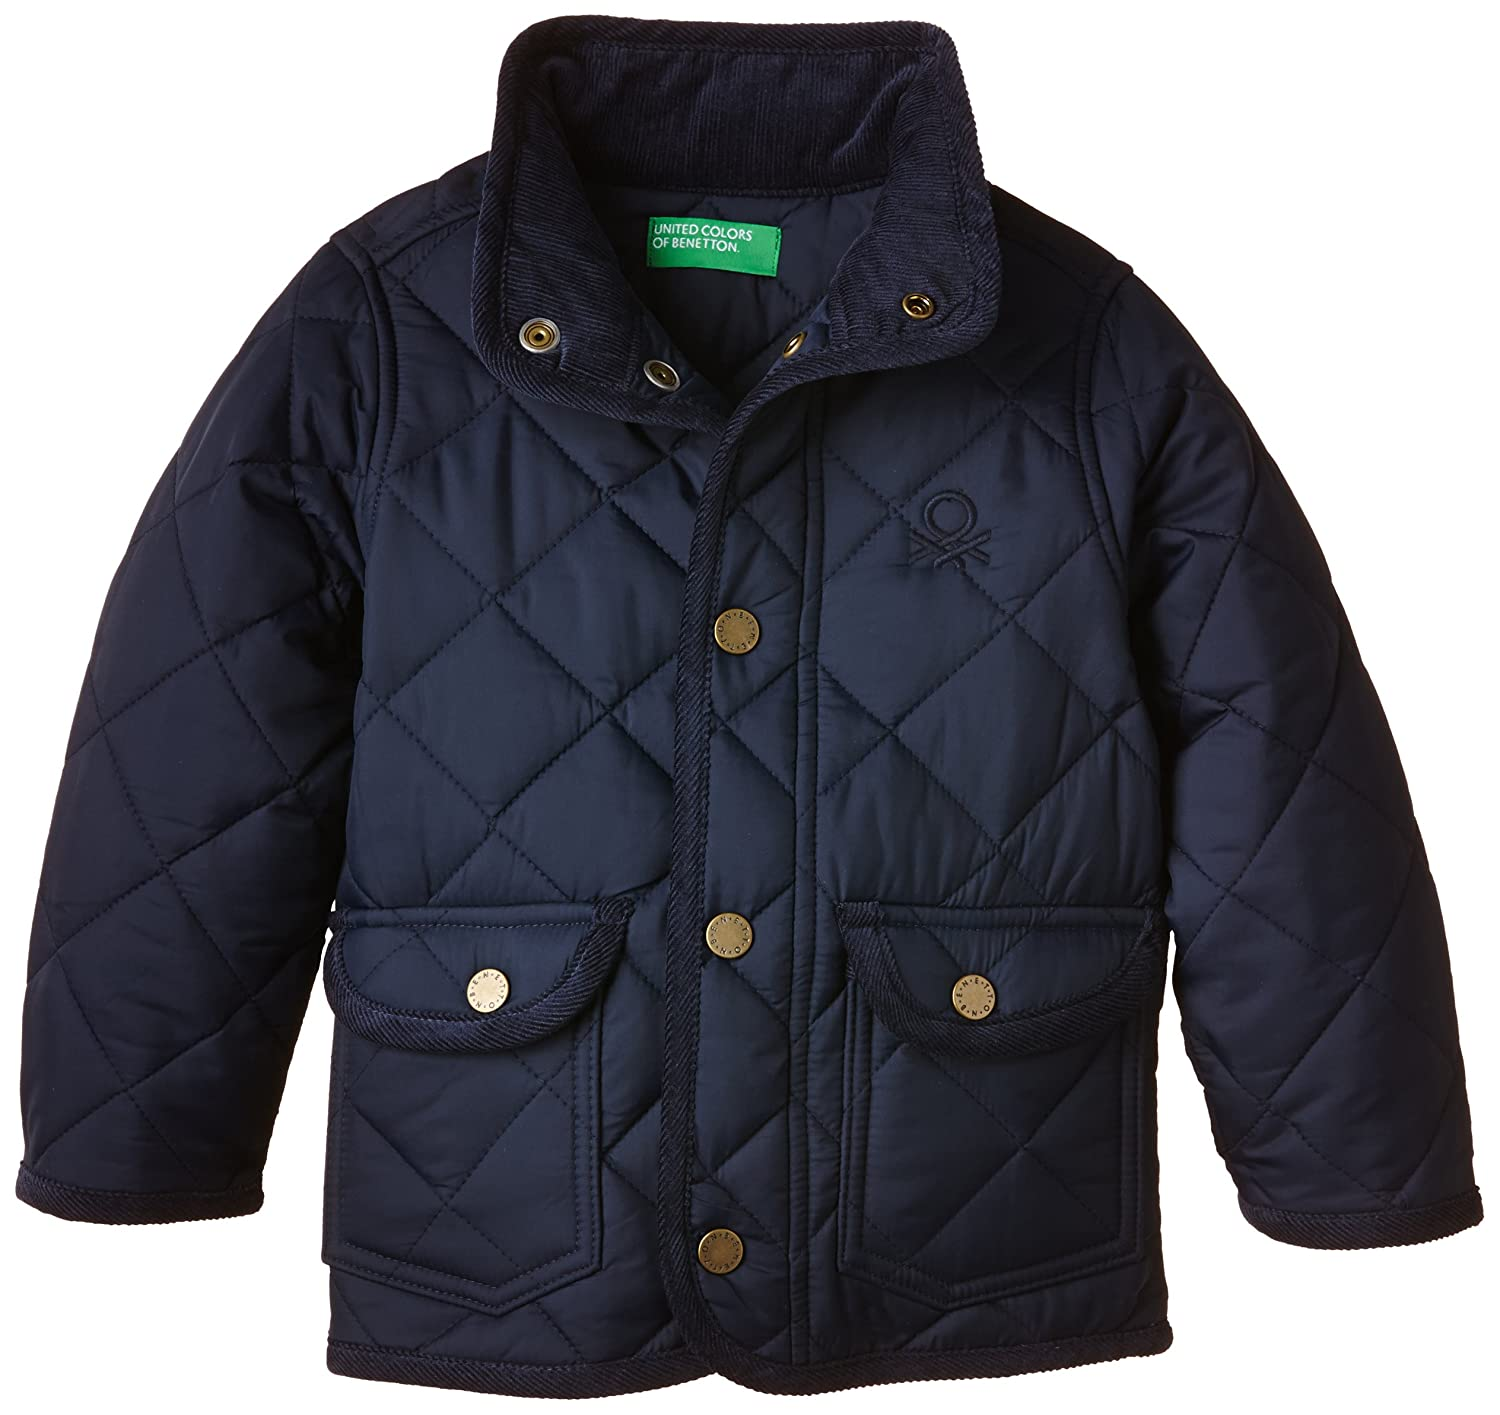 cc03fbd1f24d United Colors of Benetton Boy s 2DKB534W0 Quilted Jacket